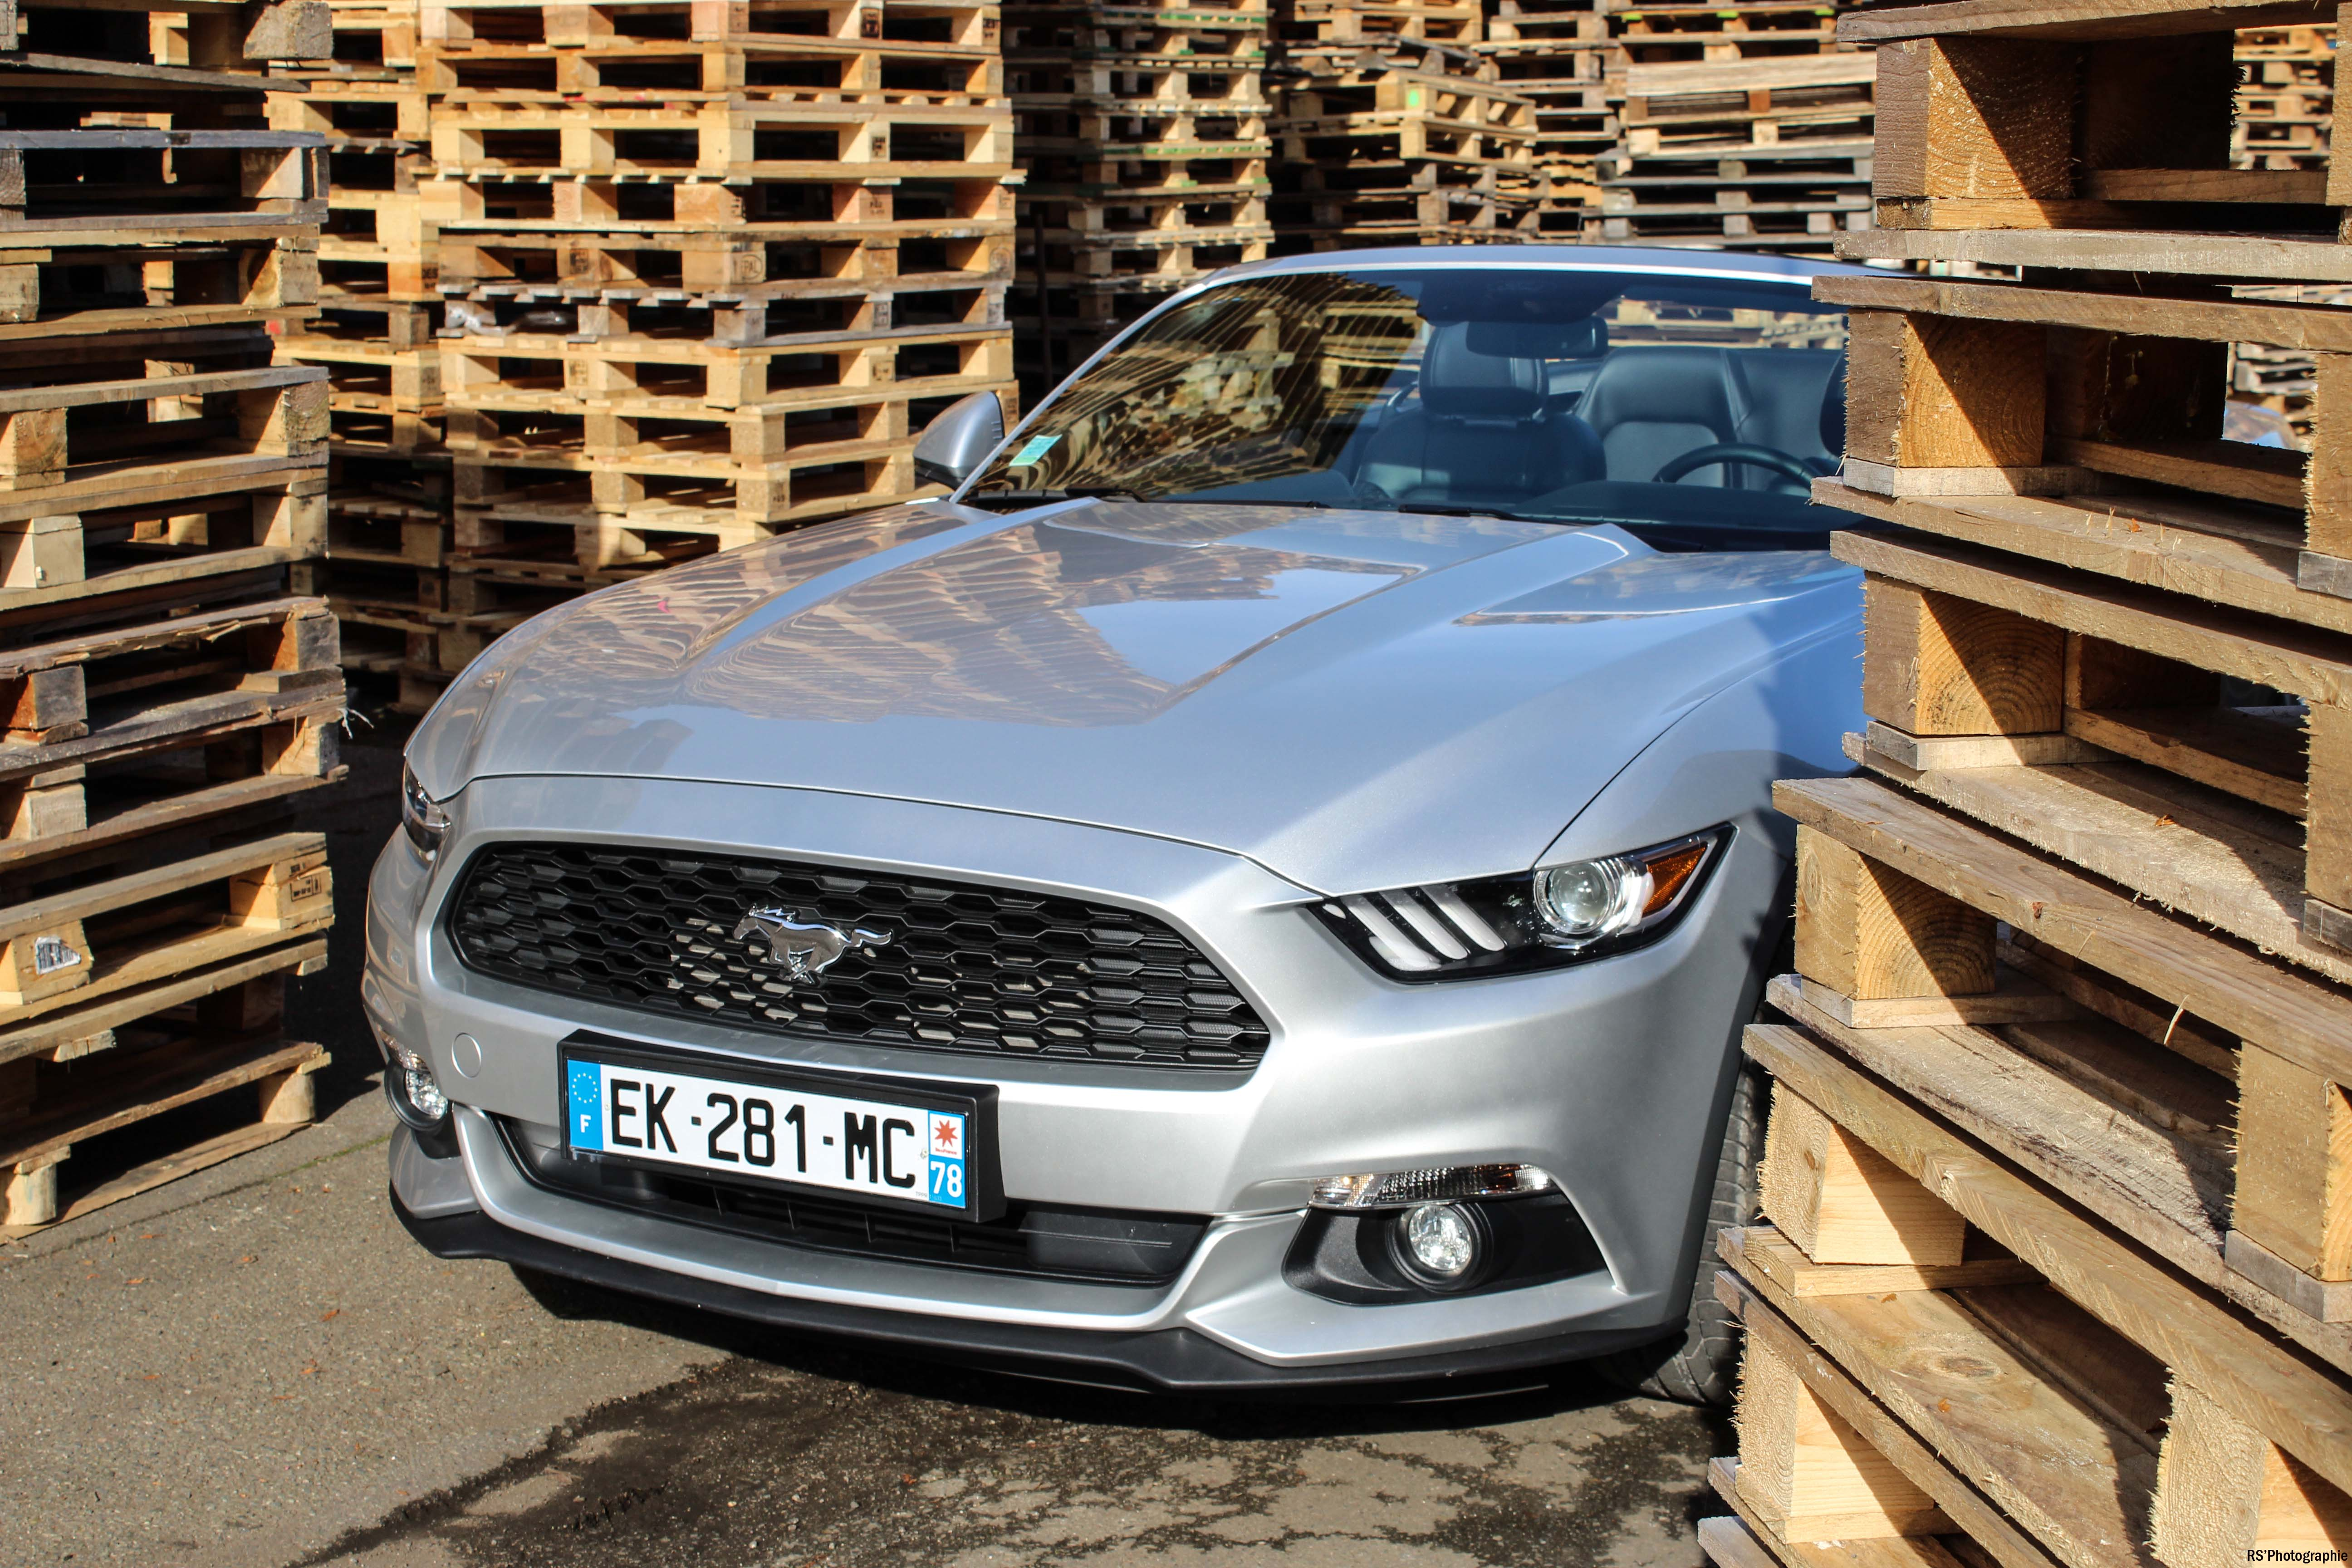 fordmustangeconvertible27-ford-mustang-convertible-ecoboost-avant-front-Arnaud Demasier-RSPhotographie